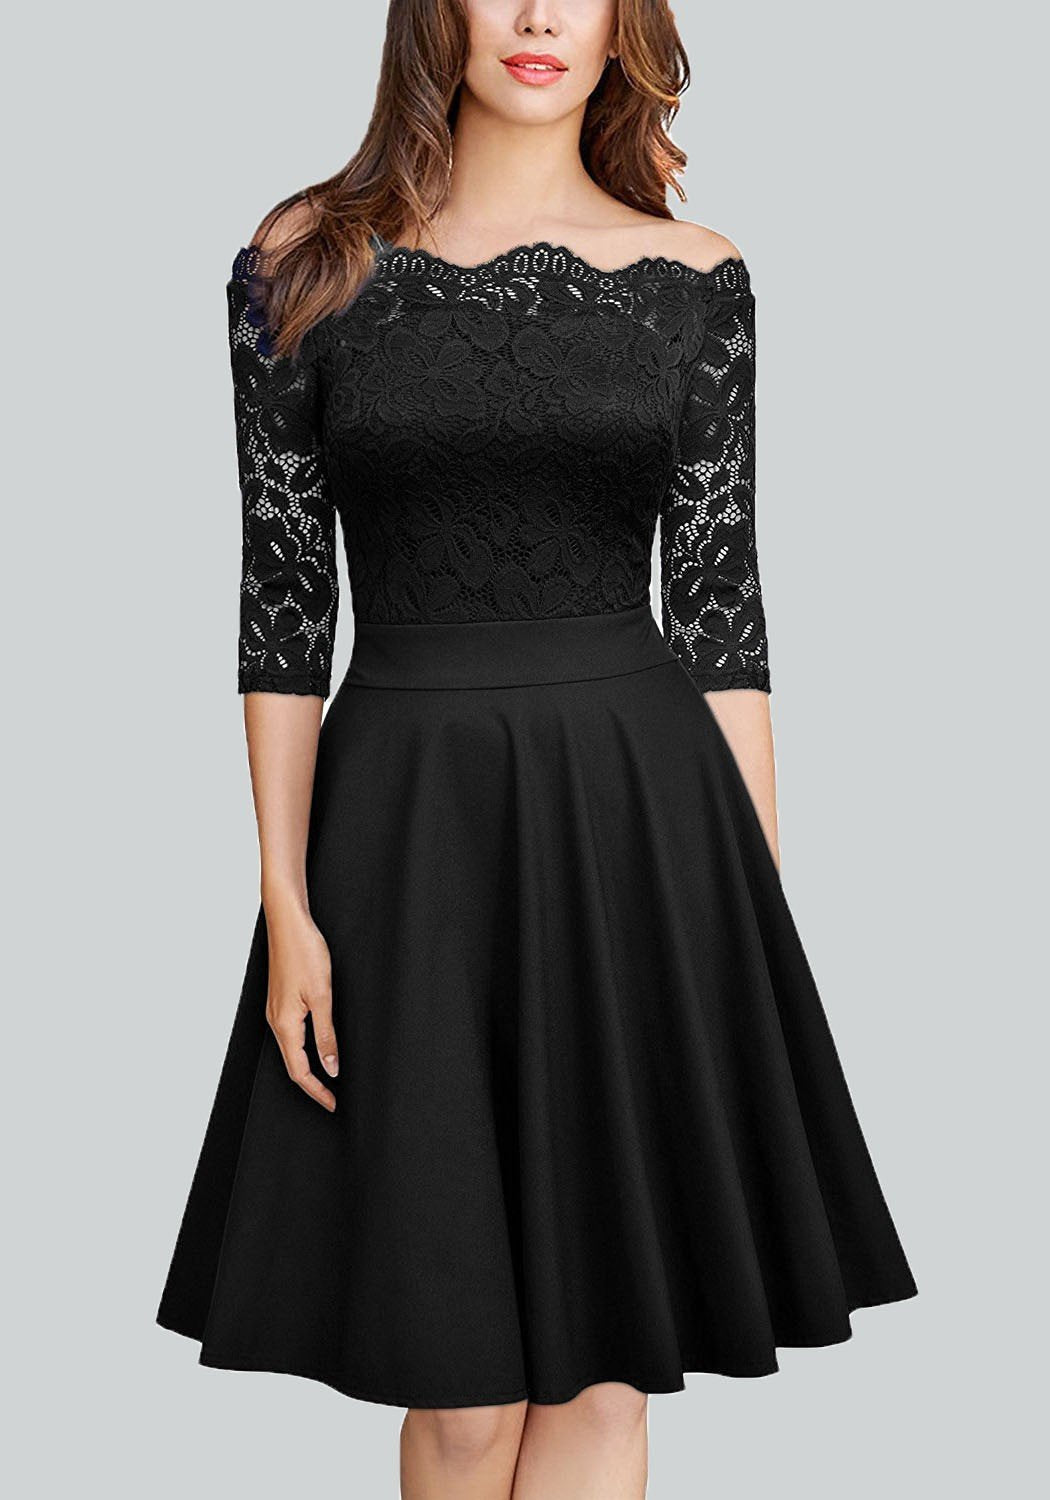 Black Patchwork Lace Pleated Off Shoulder Backless Long Sleeve Homecoming Party Midi Dress